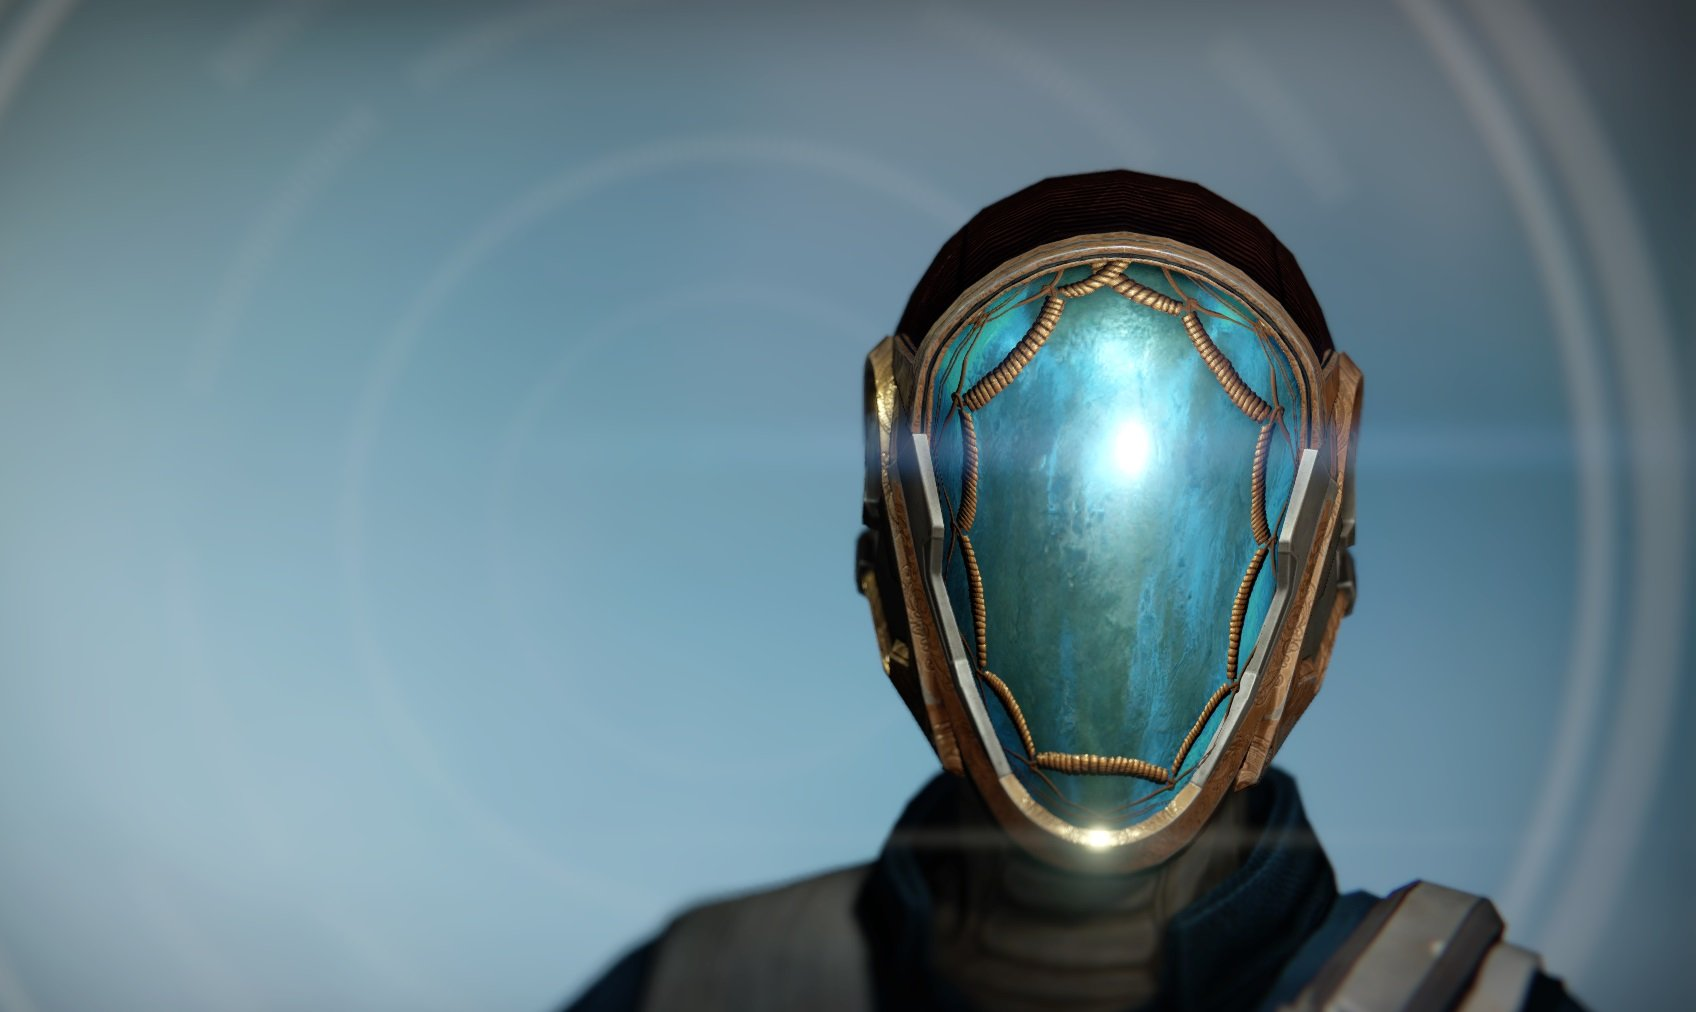 What Xur is selling in Destiny 2 - September 18, 2020